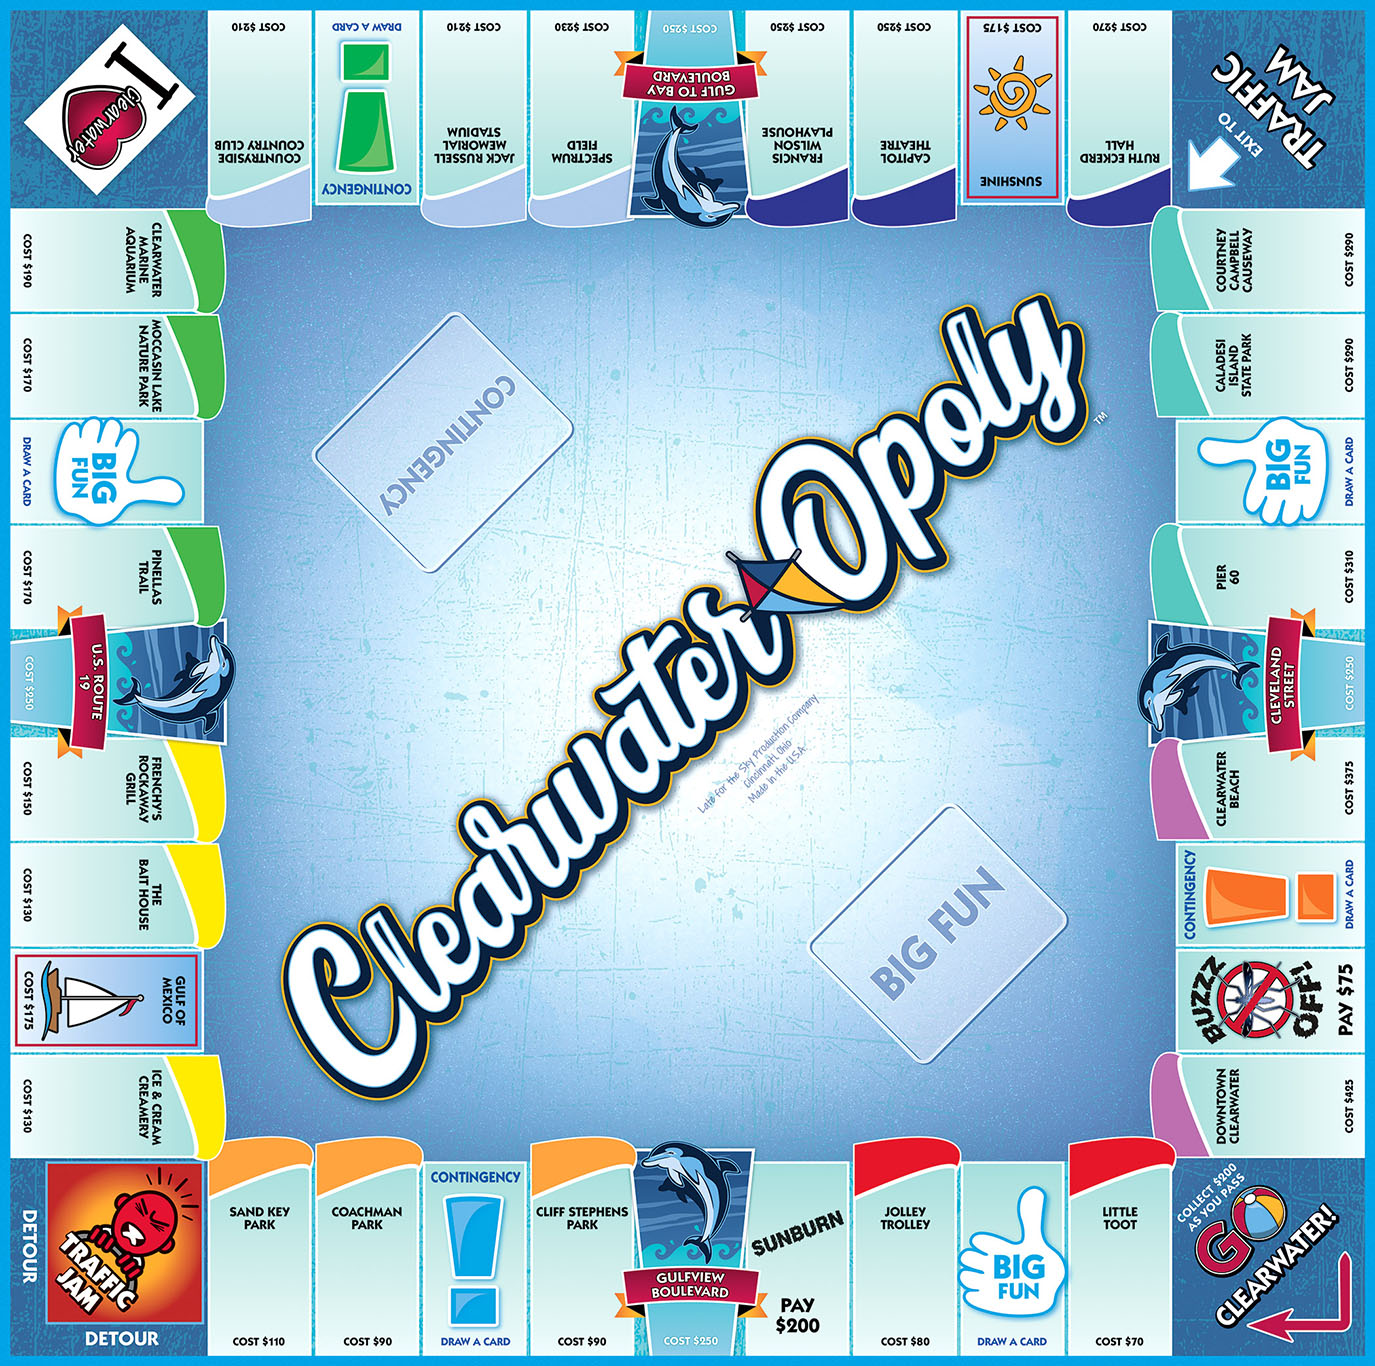 CLEARWATER-OPOLY Board Game